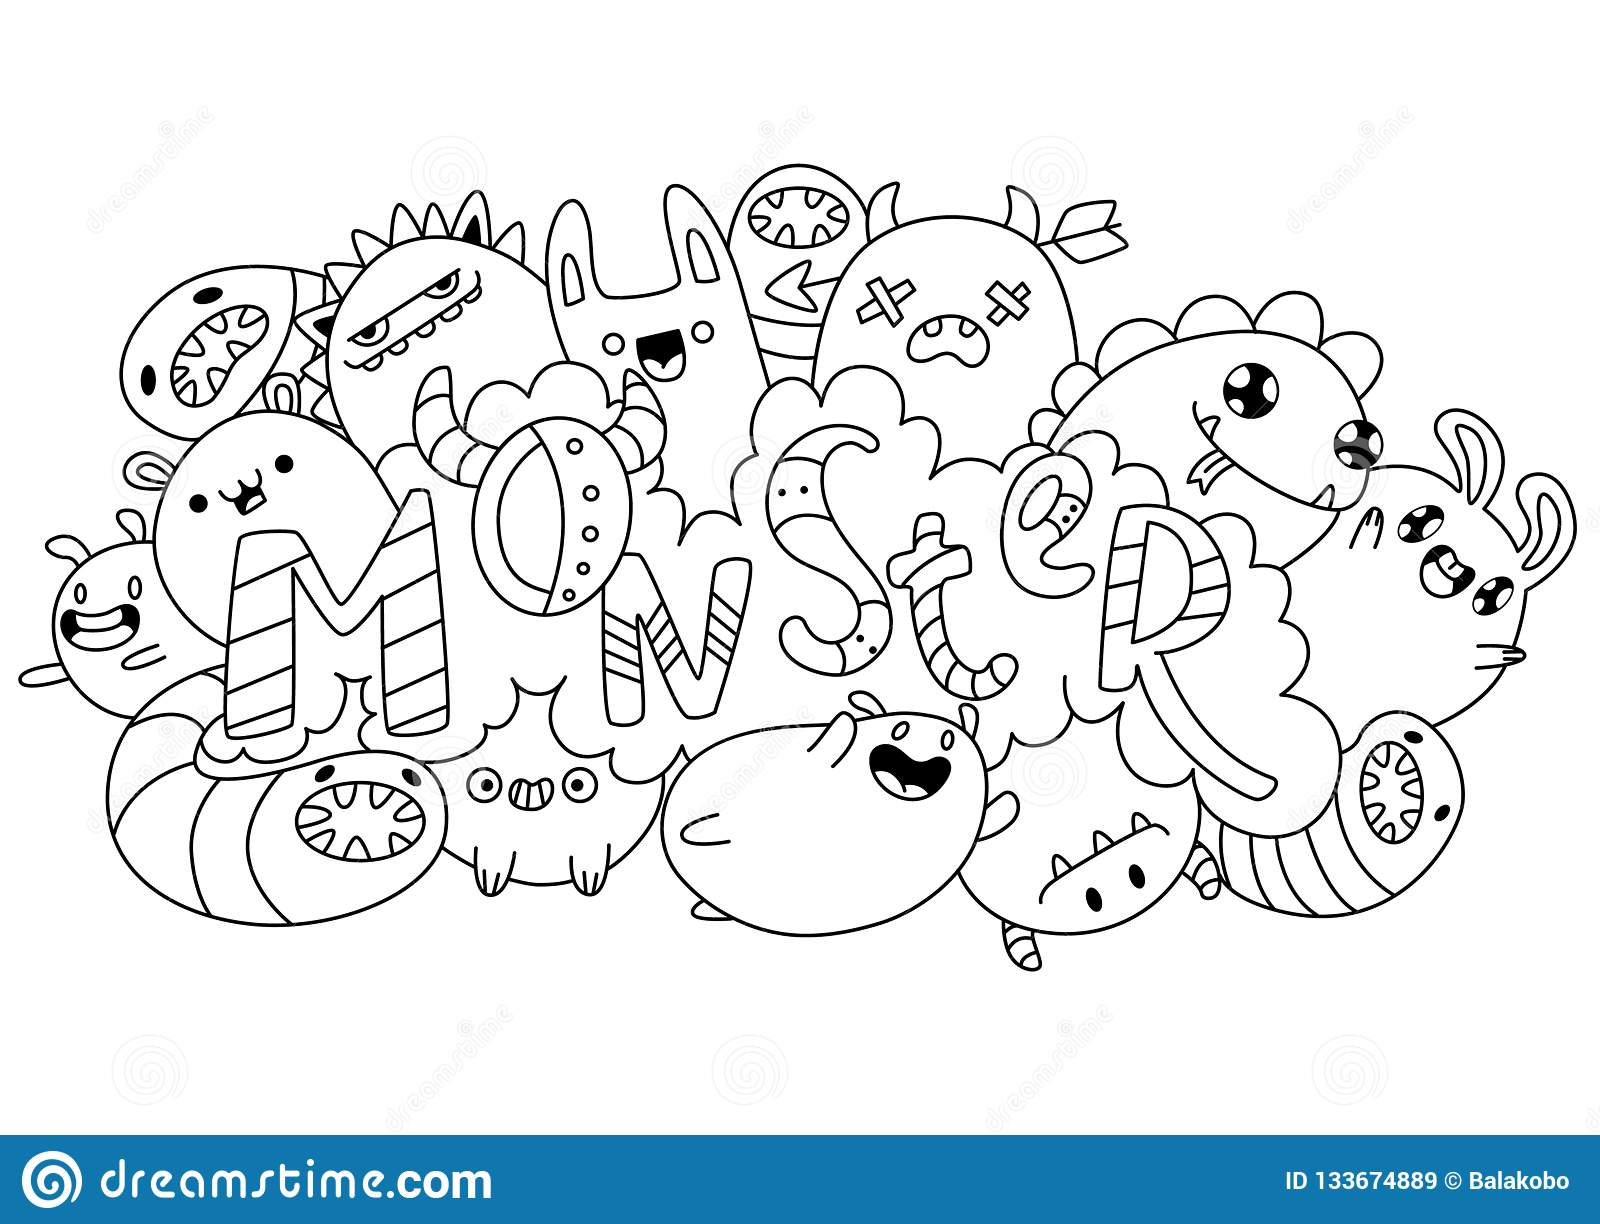 Coloring Book Monsters Kawaii Style Stock Vector Illustration